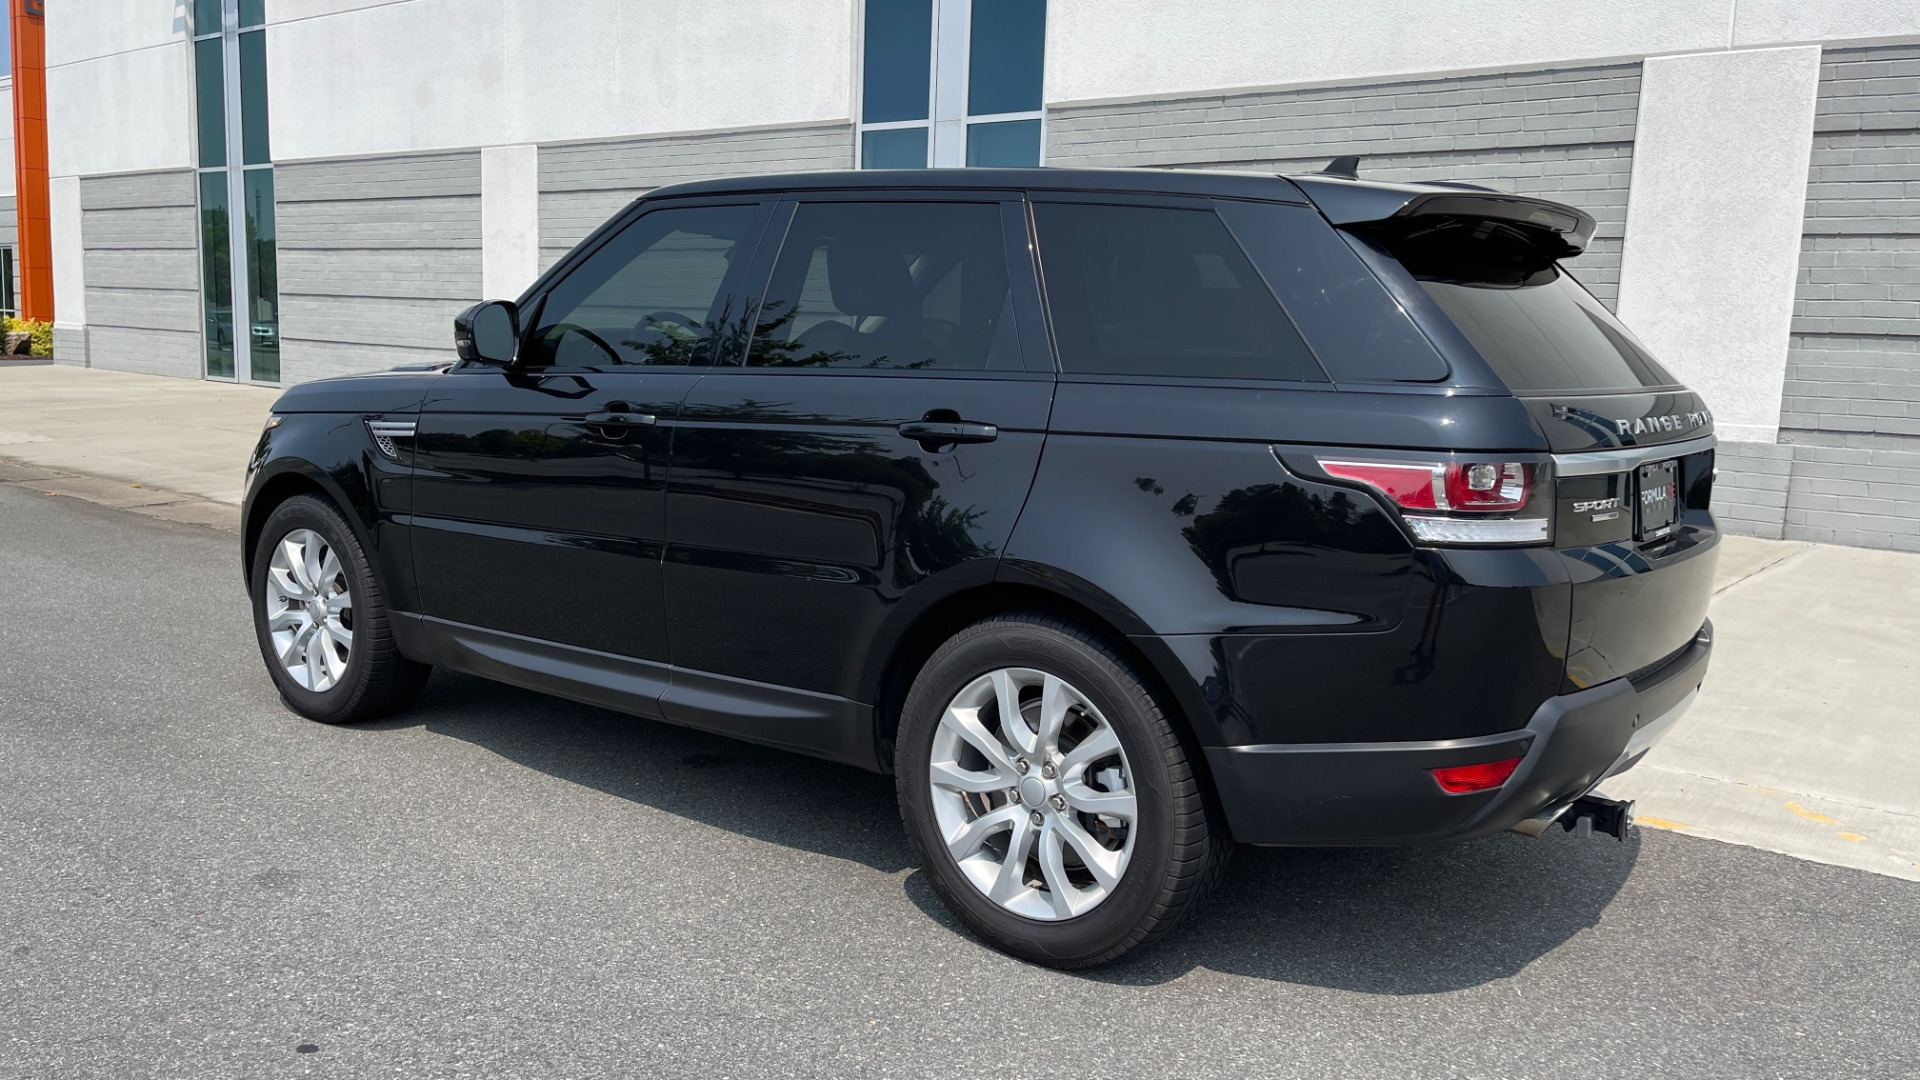 Used 2016 Land Rover RANGE ROVER SPORT V6 HSE / NAV / PANO-ROOF / MERIDIAN / CONSOLE COOLER / CAMERAS for sale $40,995 at Formula Imports in Charlotte NC 28227 5